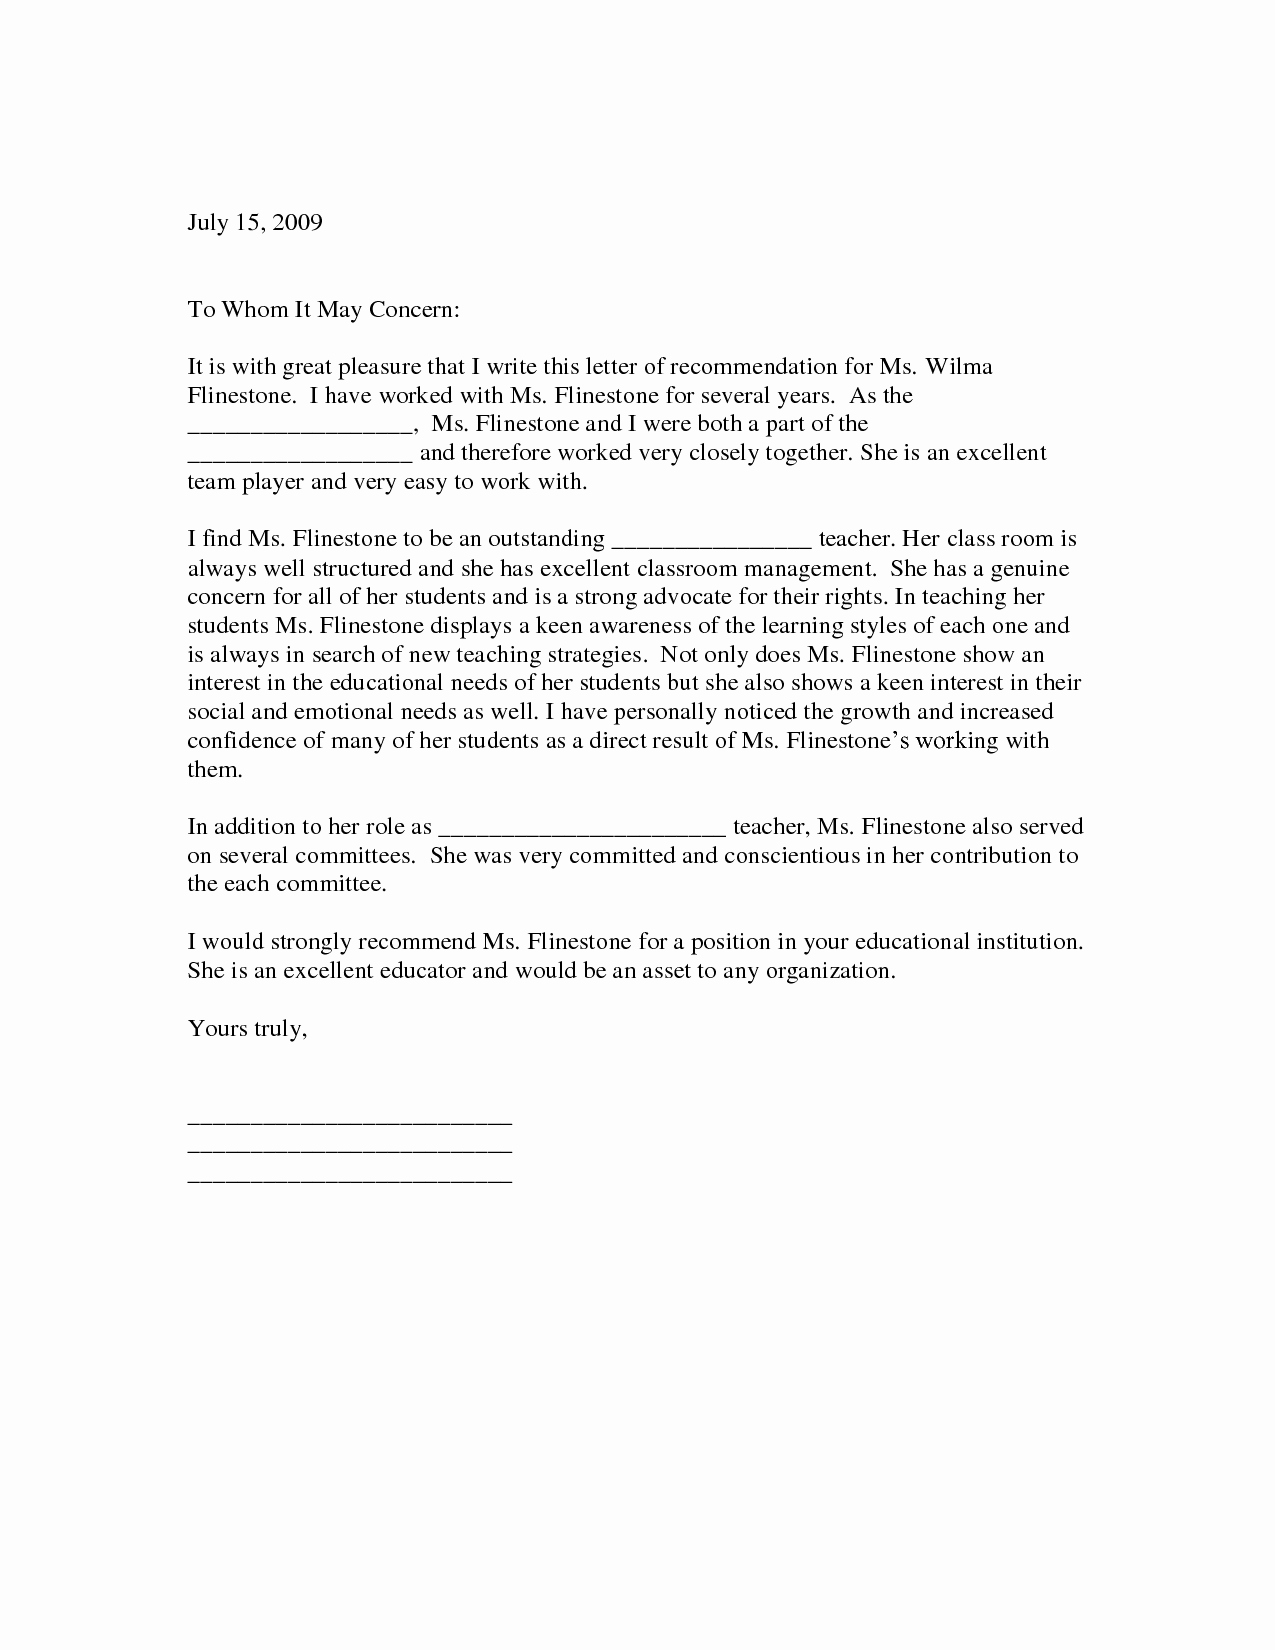 Teaching Letter Of Recommendation Unique Sample Letter Of Re Mendation for Teacher